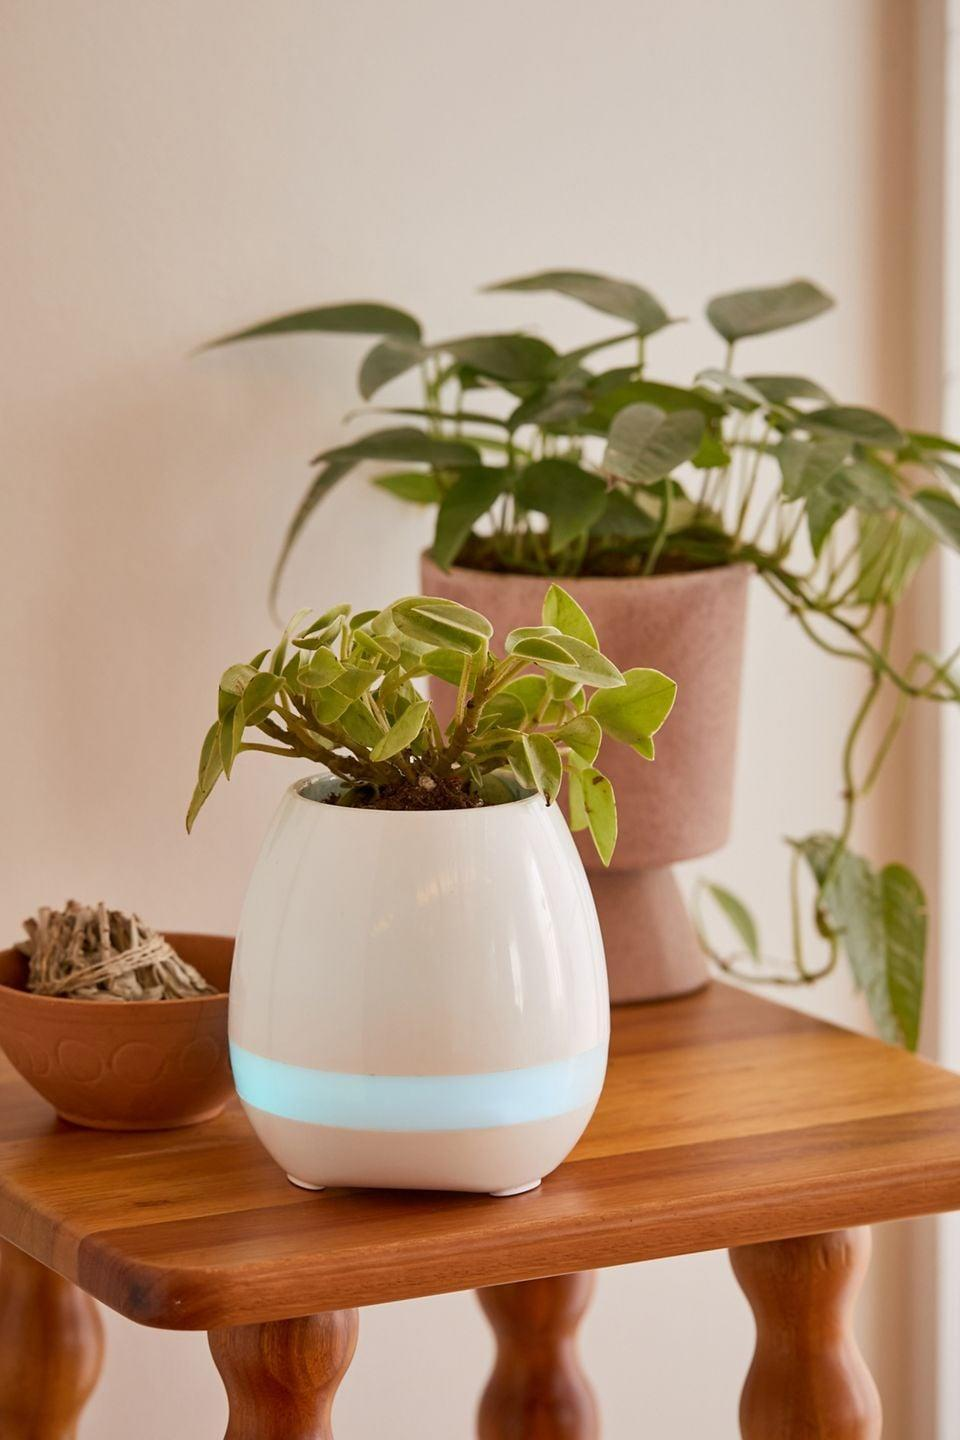 <p>If they have plants all over their home, they'll appreciate this upgraded <span>Planter Bluetooth Speaker</span> ($20). It's such a cute planter that doubles as a speaker perfect for their desk or their bedside table. </p>